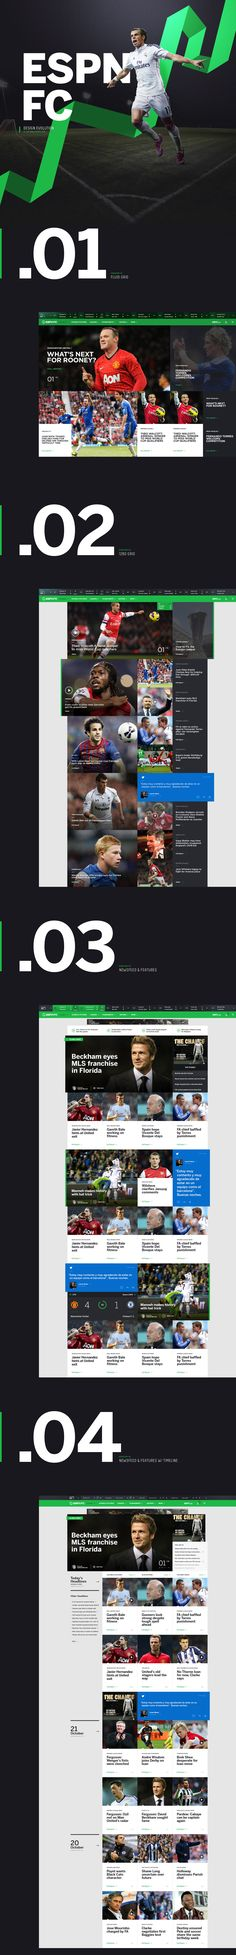 While at Rally Interactive I was the CD/Lead Designer for concepts on the new ESPN FC. Here is an evolution of how it started and where I left off. See the final result from Rally at espnfc.com.